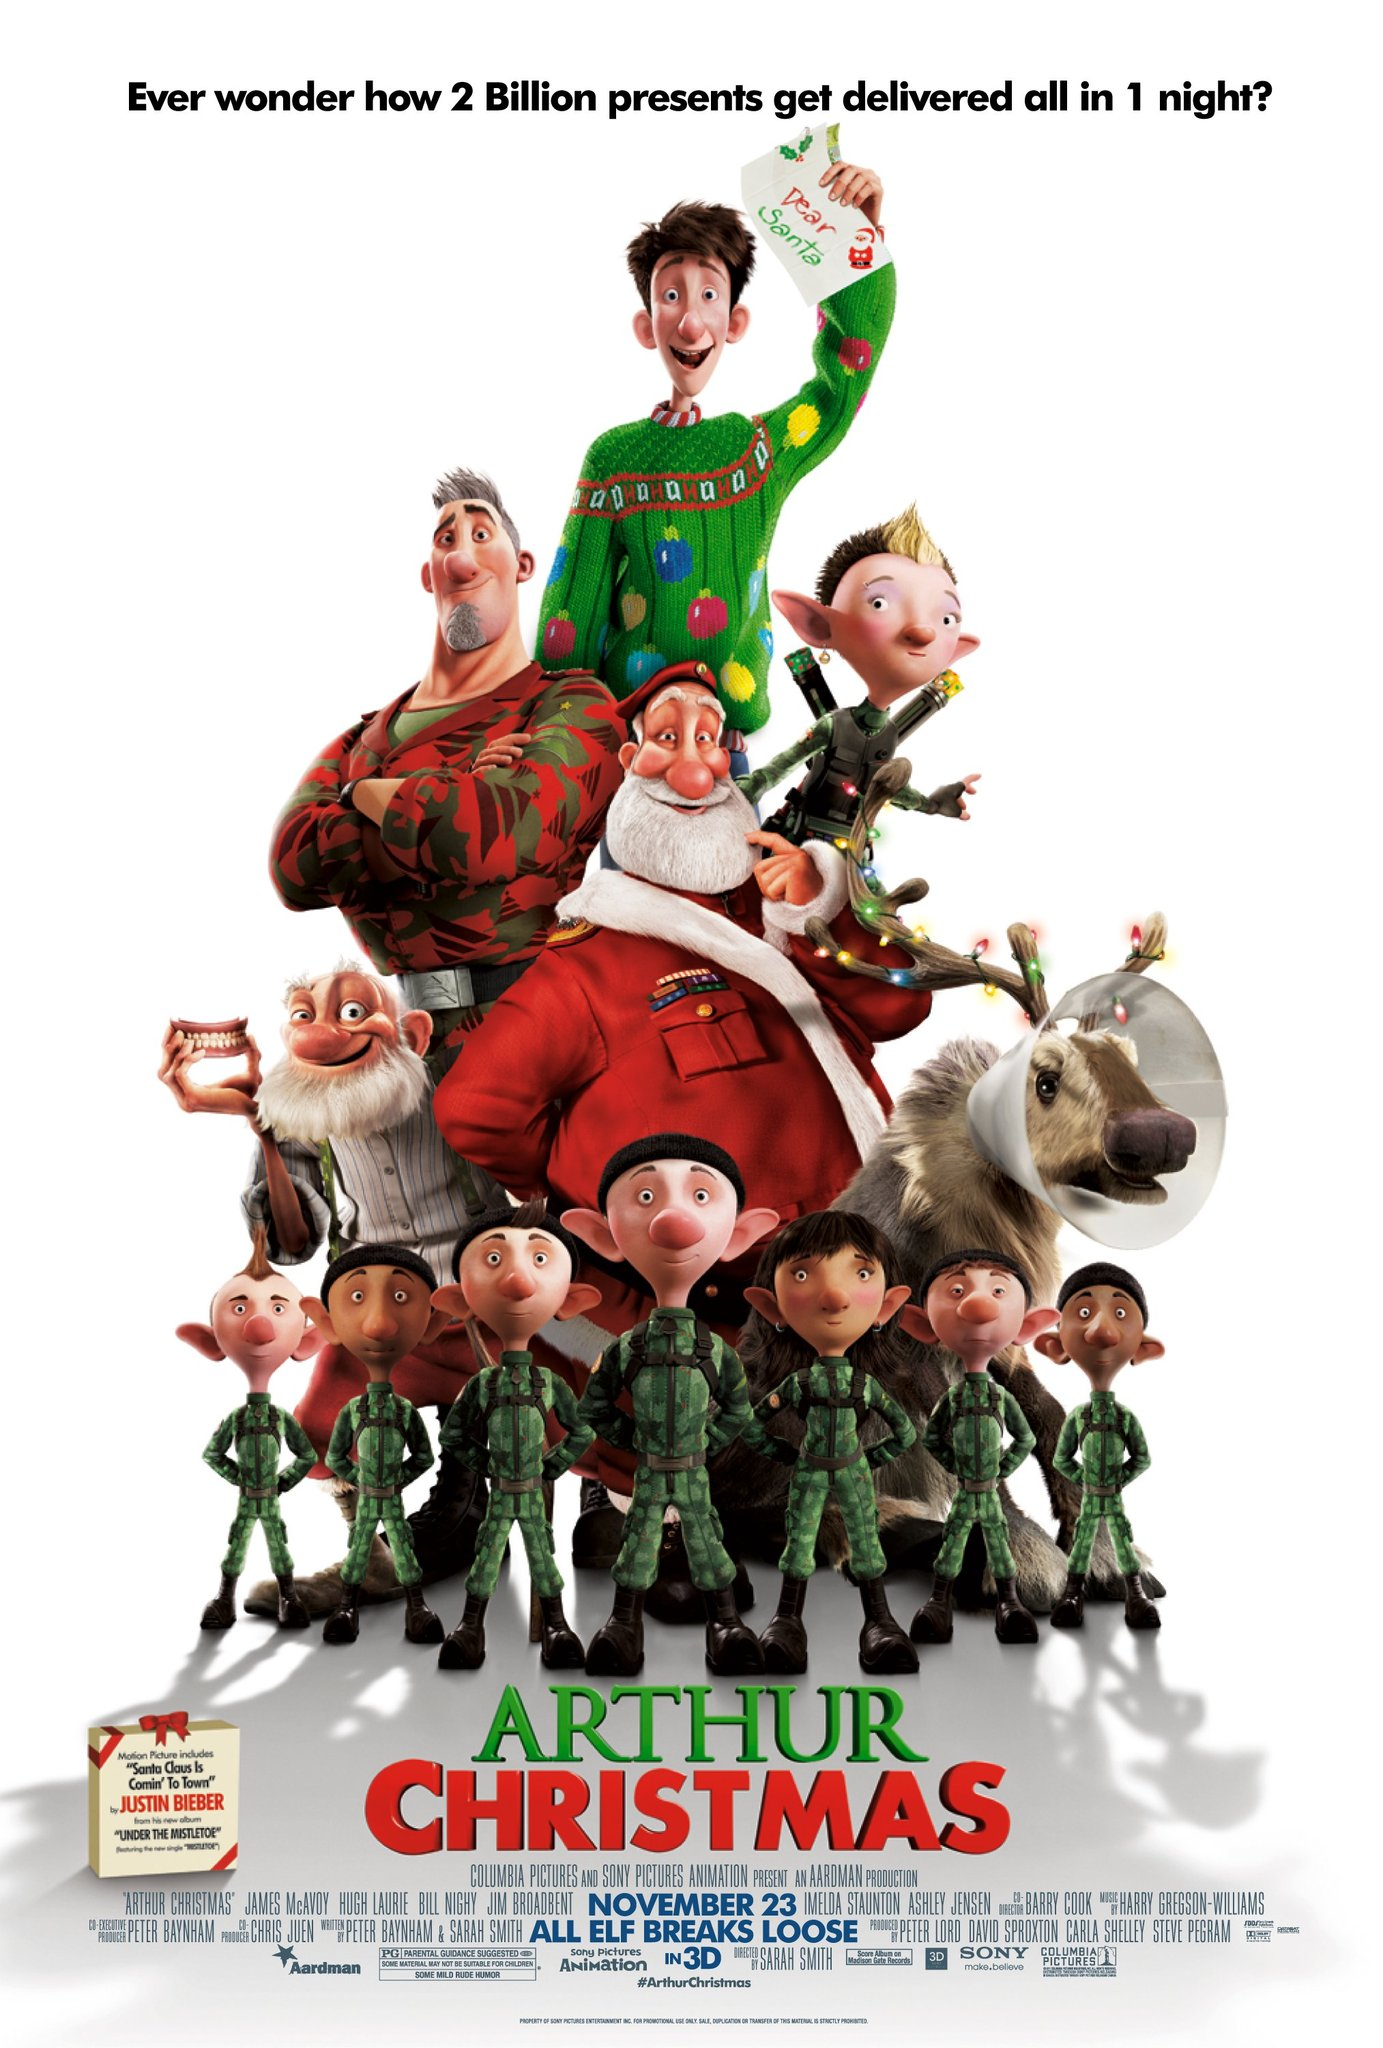 arthur christmas 2011 imdb - Animated Christmas Elves Decorations